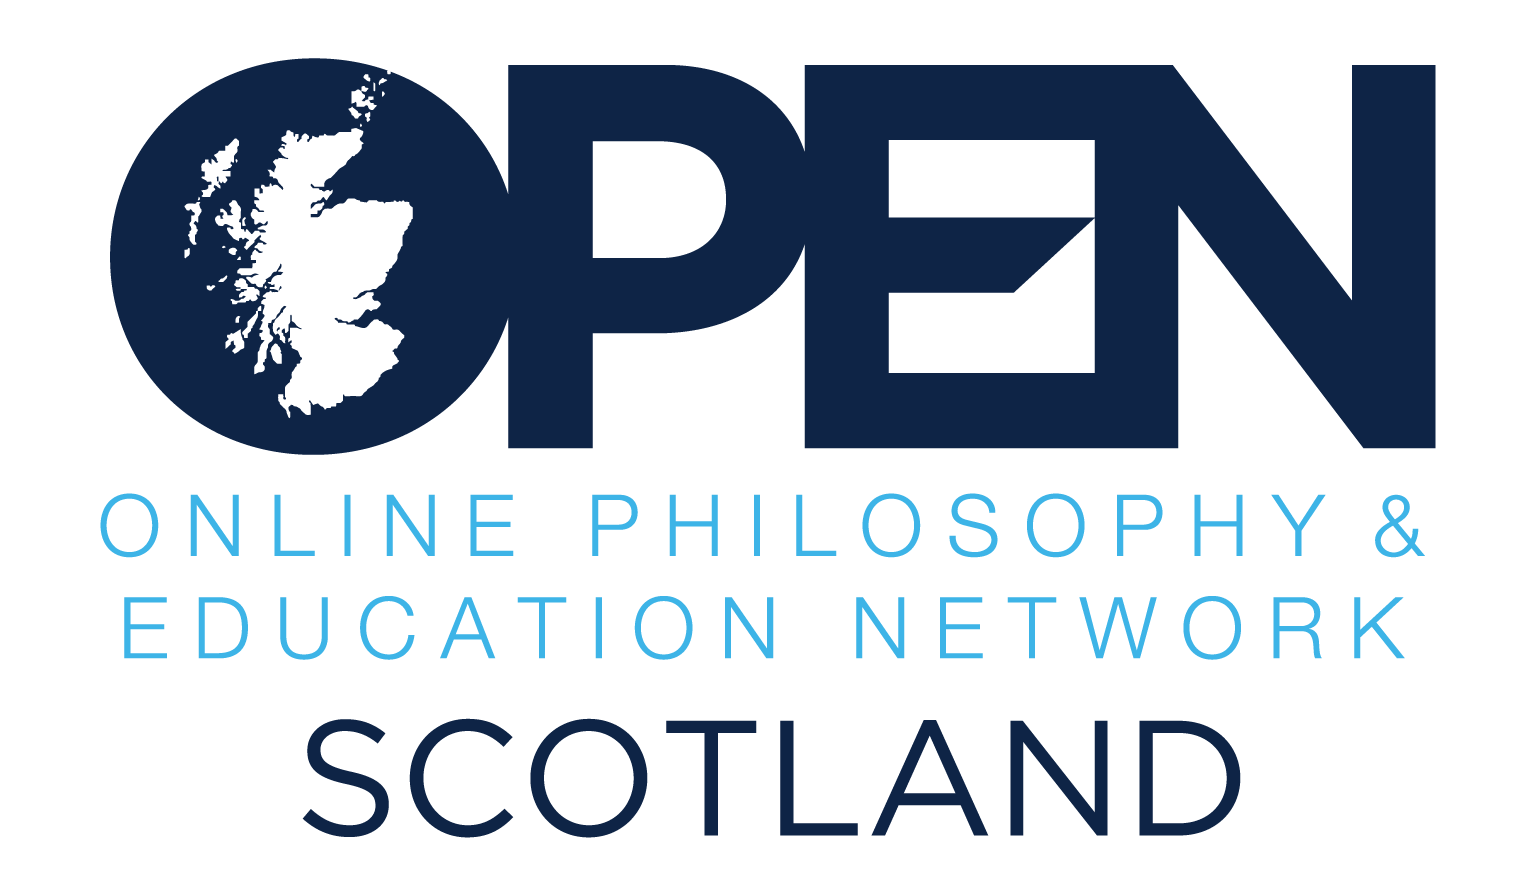 OPEN-Scotland logo